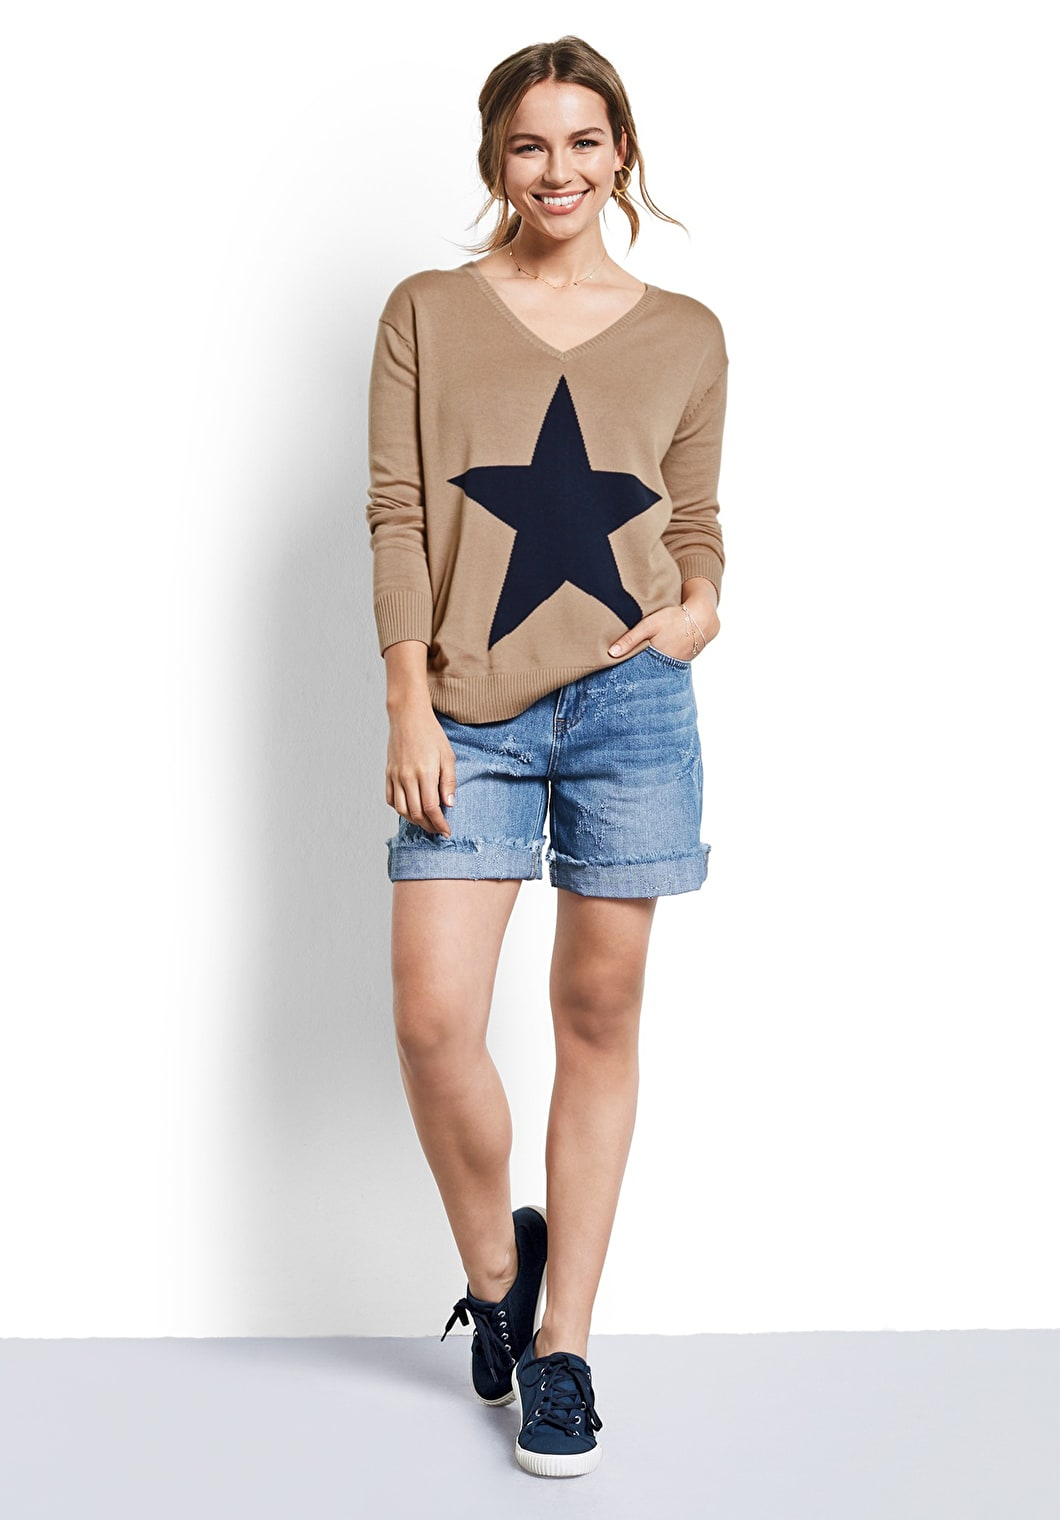 Model wears our signature star v neck jumper in a lightweight knit in Camel and midnight star